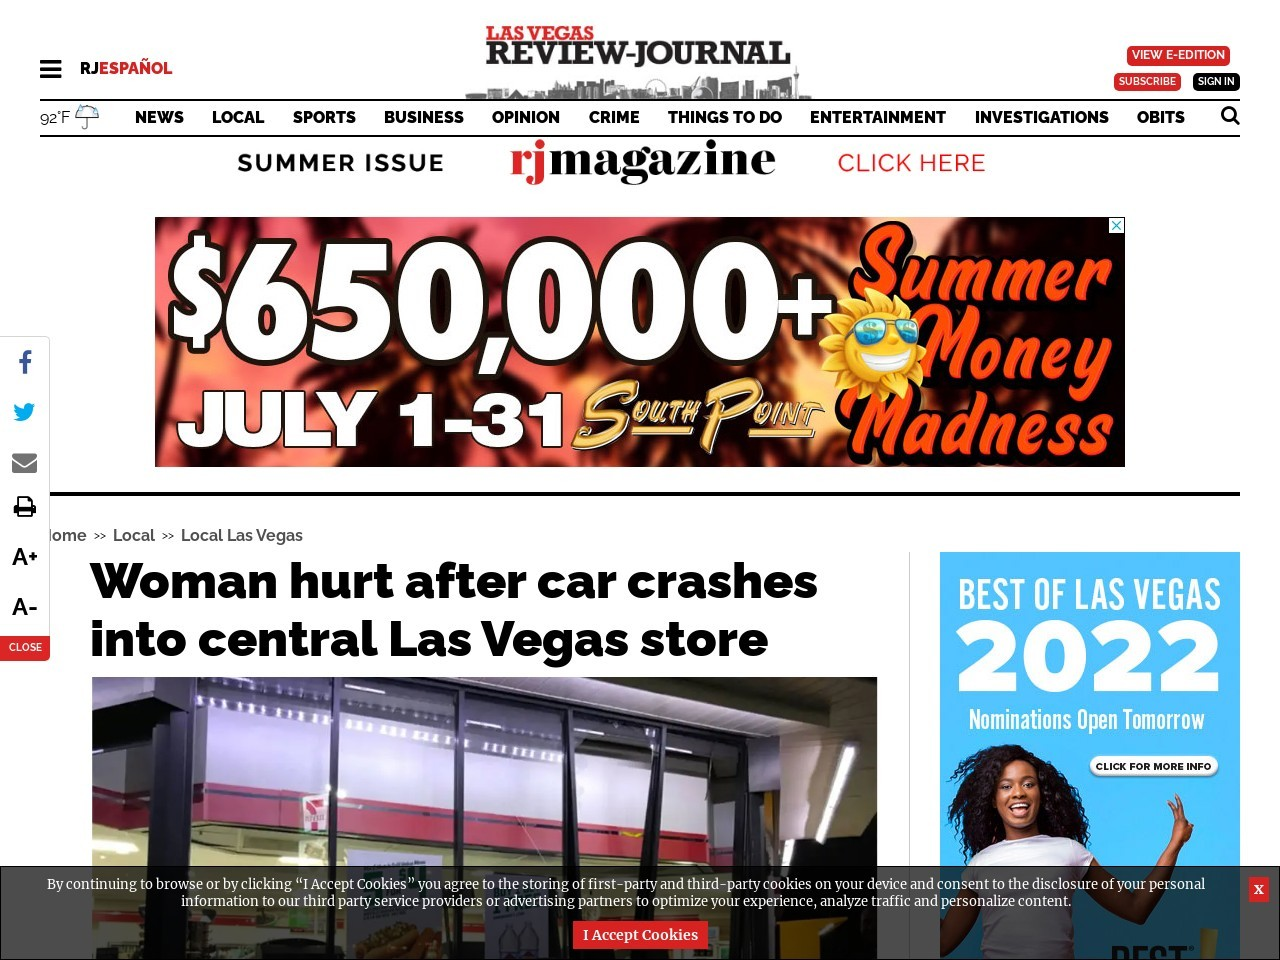 Woman hurt after car crashes into central Las Vegas store